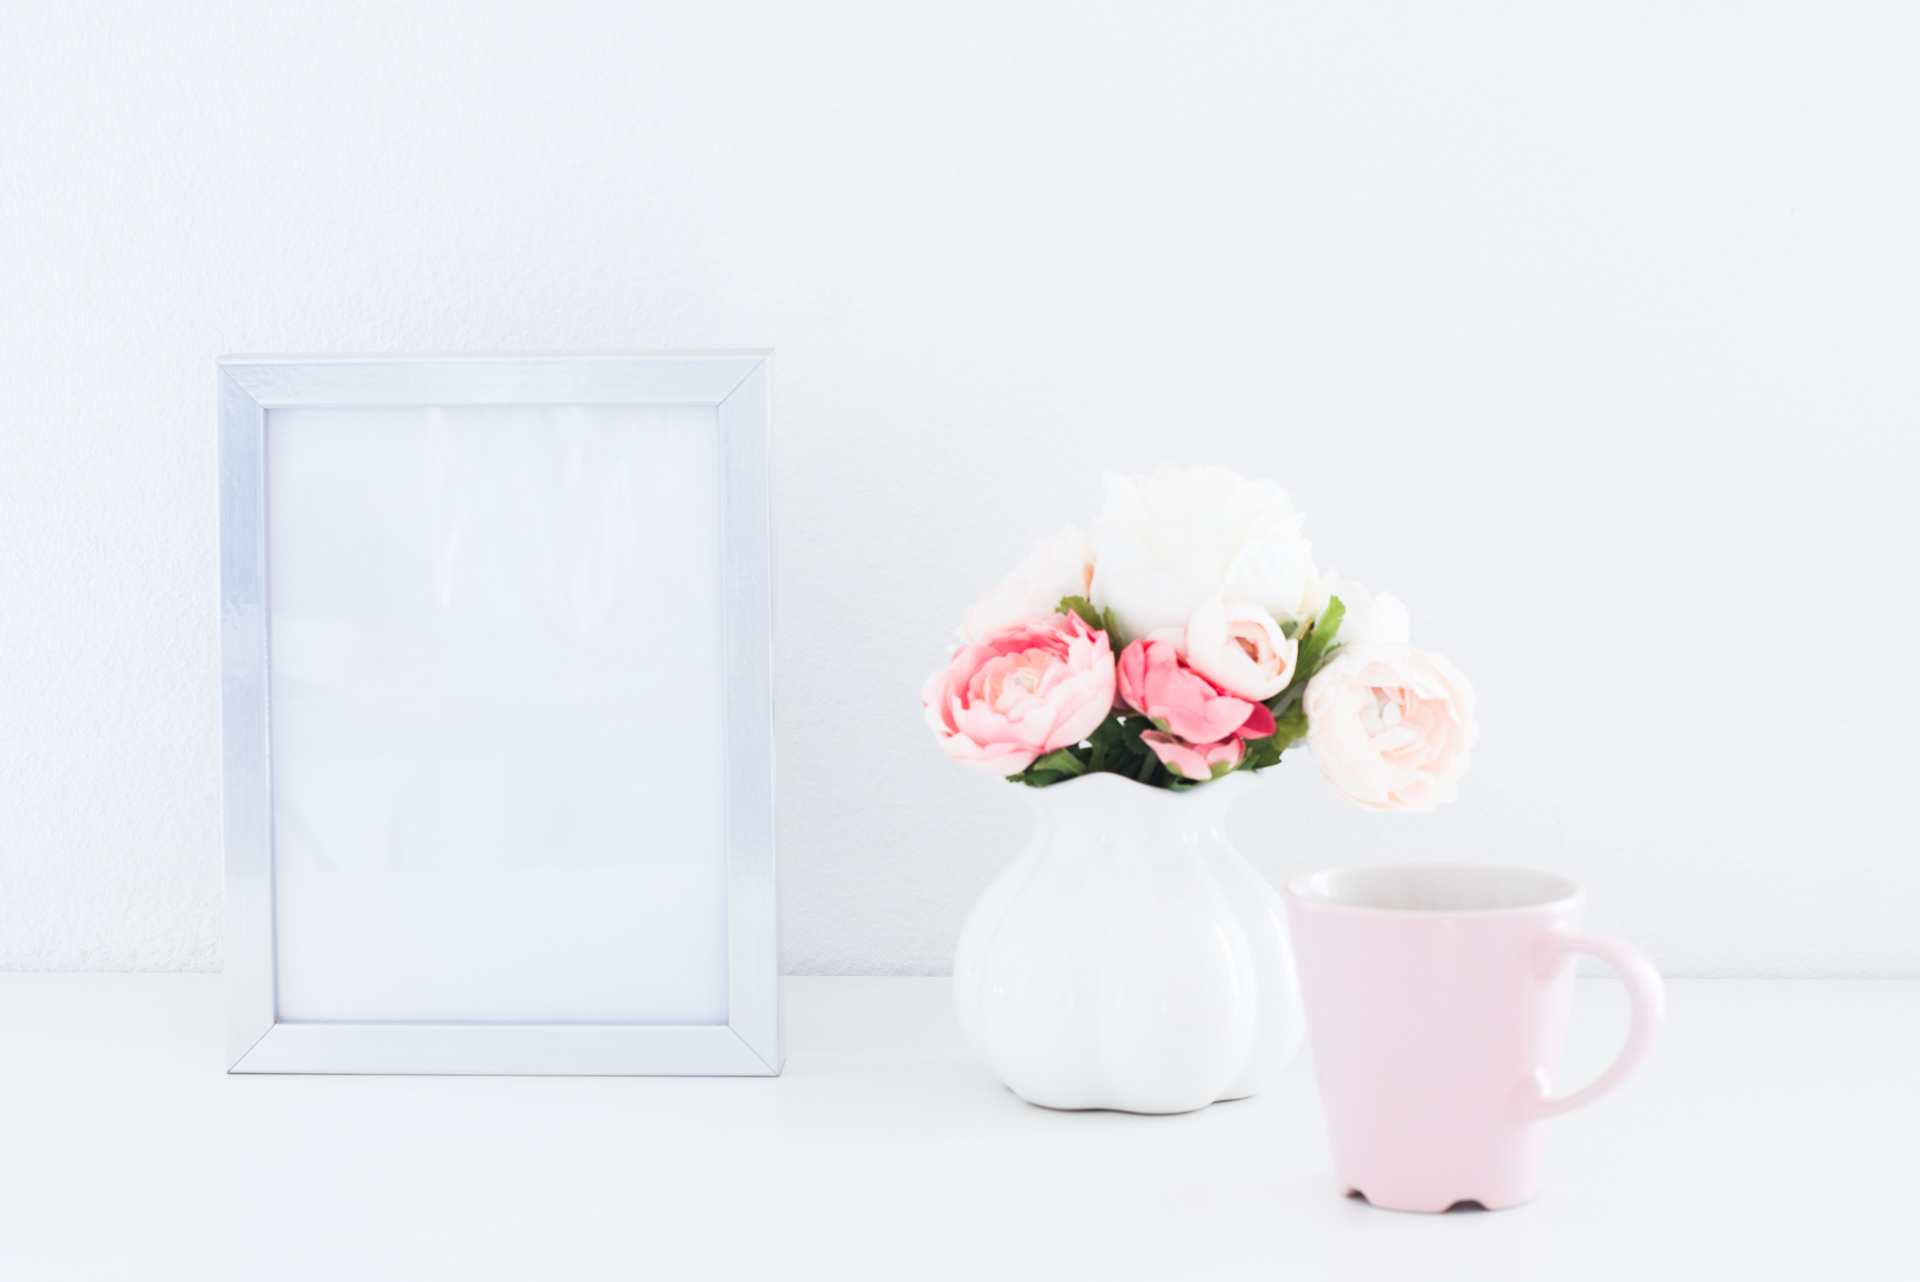 Free Photography Stock Flower And Frame Styled Stock Free Styled Stock Photography